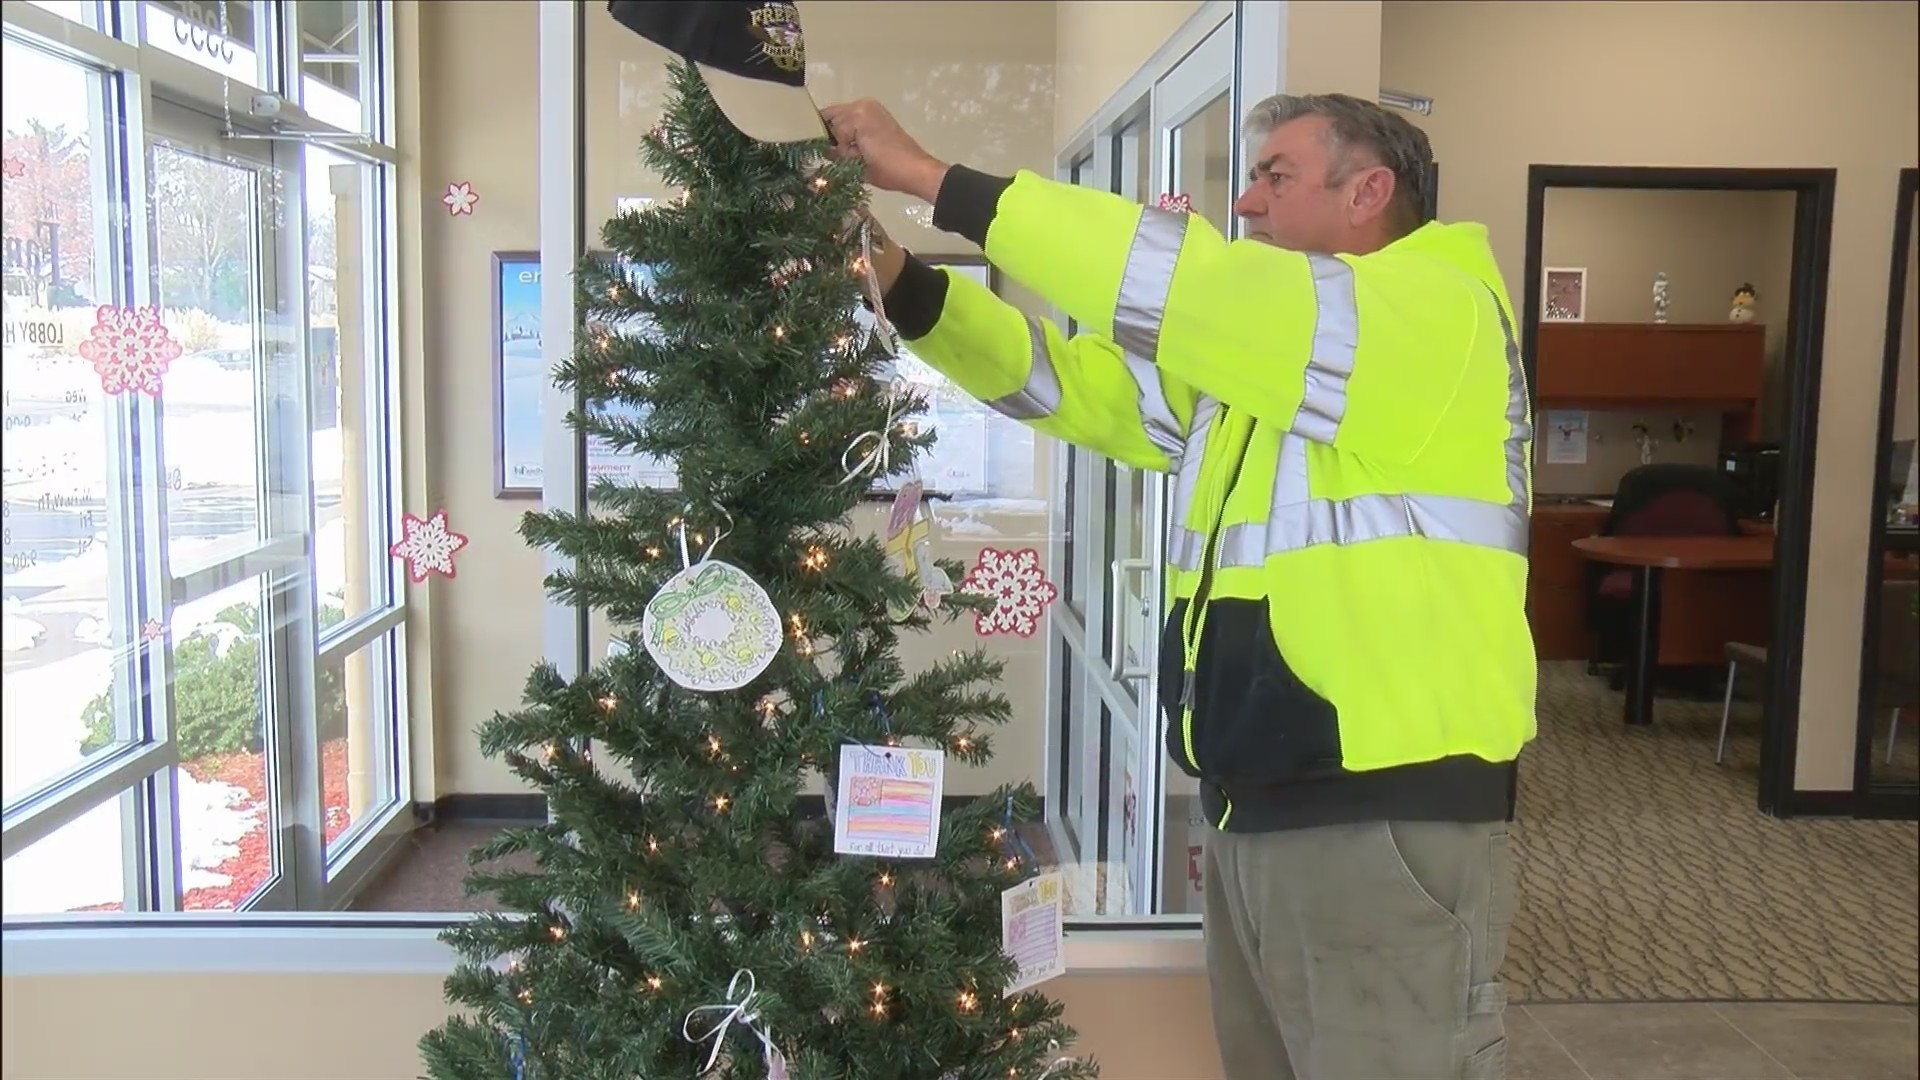 Christmas Helping Homeless.Christmas Tree With A Mission To Help Homeless Veterans